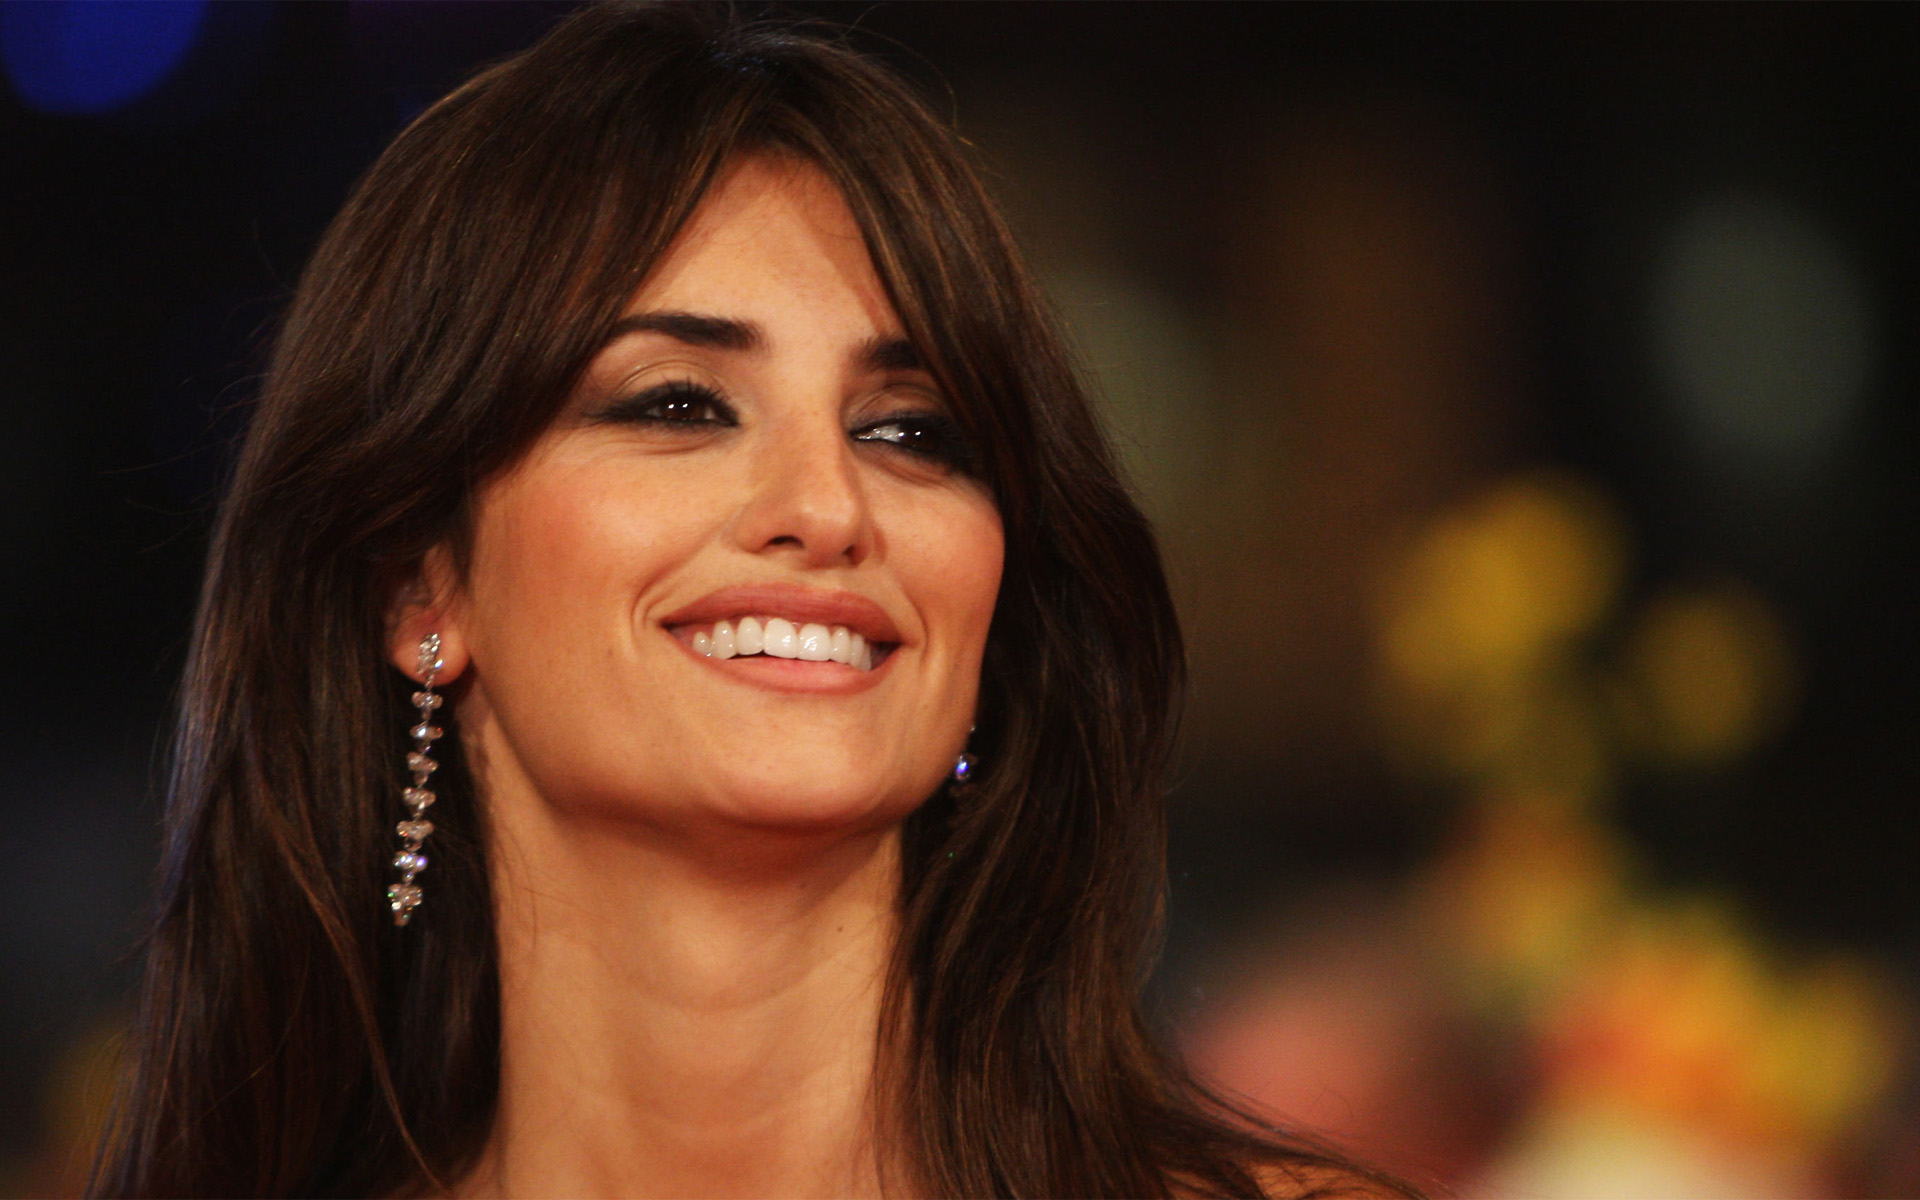 Amazing Penelope Cruz Wallpaper Hd